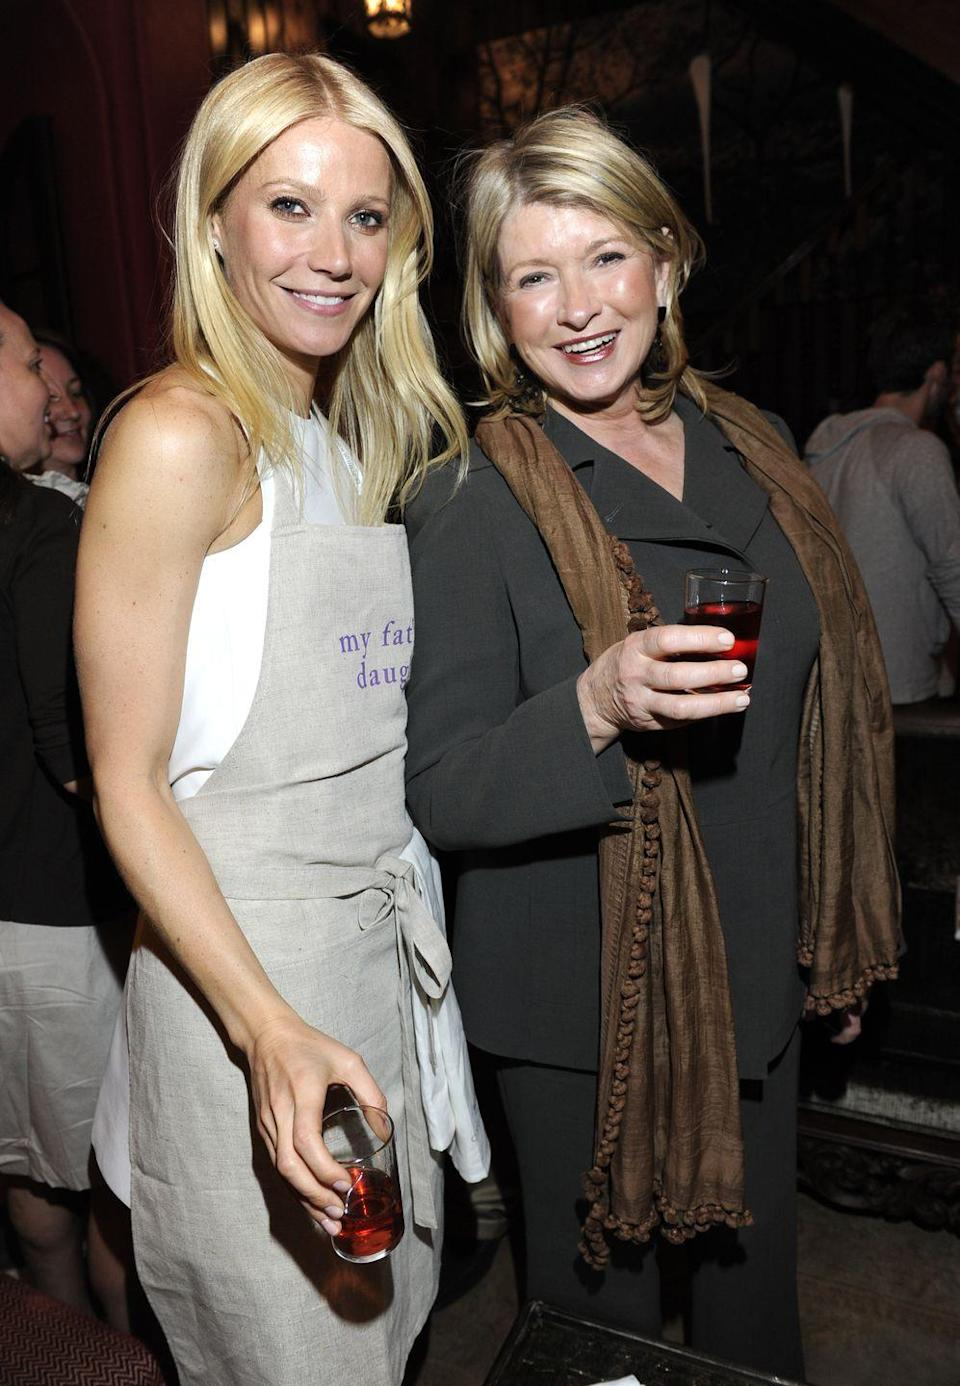 """<p>Ah, the battle of the lifestyle gurus. The feud between Gwyneth and Martha started back in 2014, when Martha didn't hold back in revealing what she thought about Gwyneth's lifestyle business, Goop. """"She's a movie star. If she were confident in her acting, she wouldn't be trying to be Martha Stewart,"""" she told <a href=""""http://www.etonline.com/news/151140_martha_stewart_slams_gwyneth_paltrow/"""" rel=""""nofollow noopener"""" target=""""_blank"""" data-ylk=""""slk:Porter magazine"""" class=""""link rapid-noclick-resp""""><em>Porter</em> magazine</a>. </p>"""